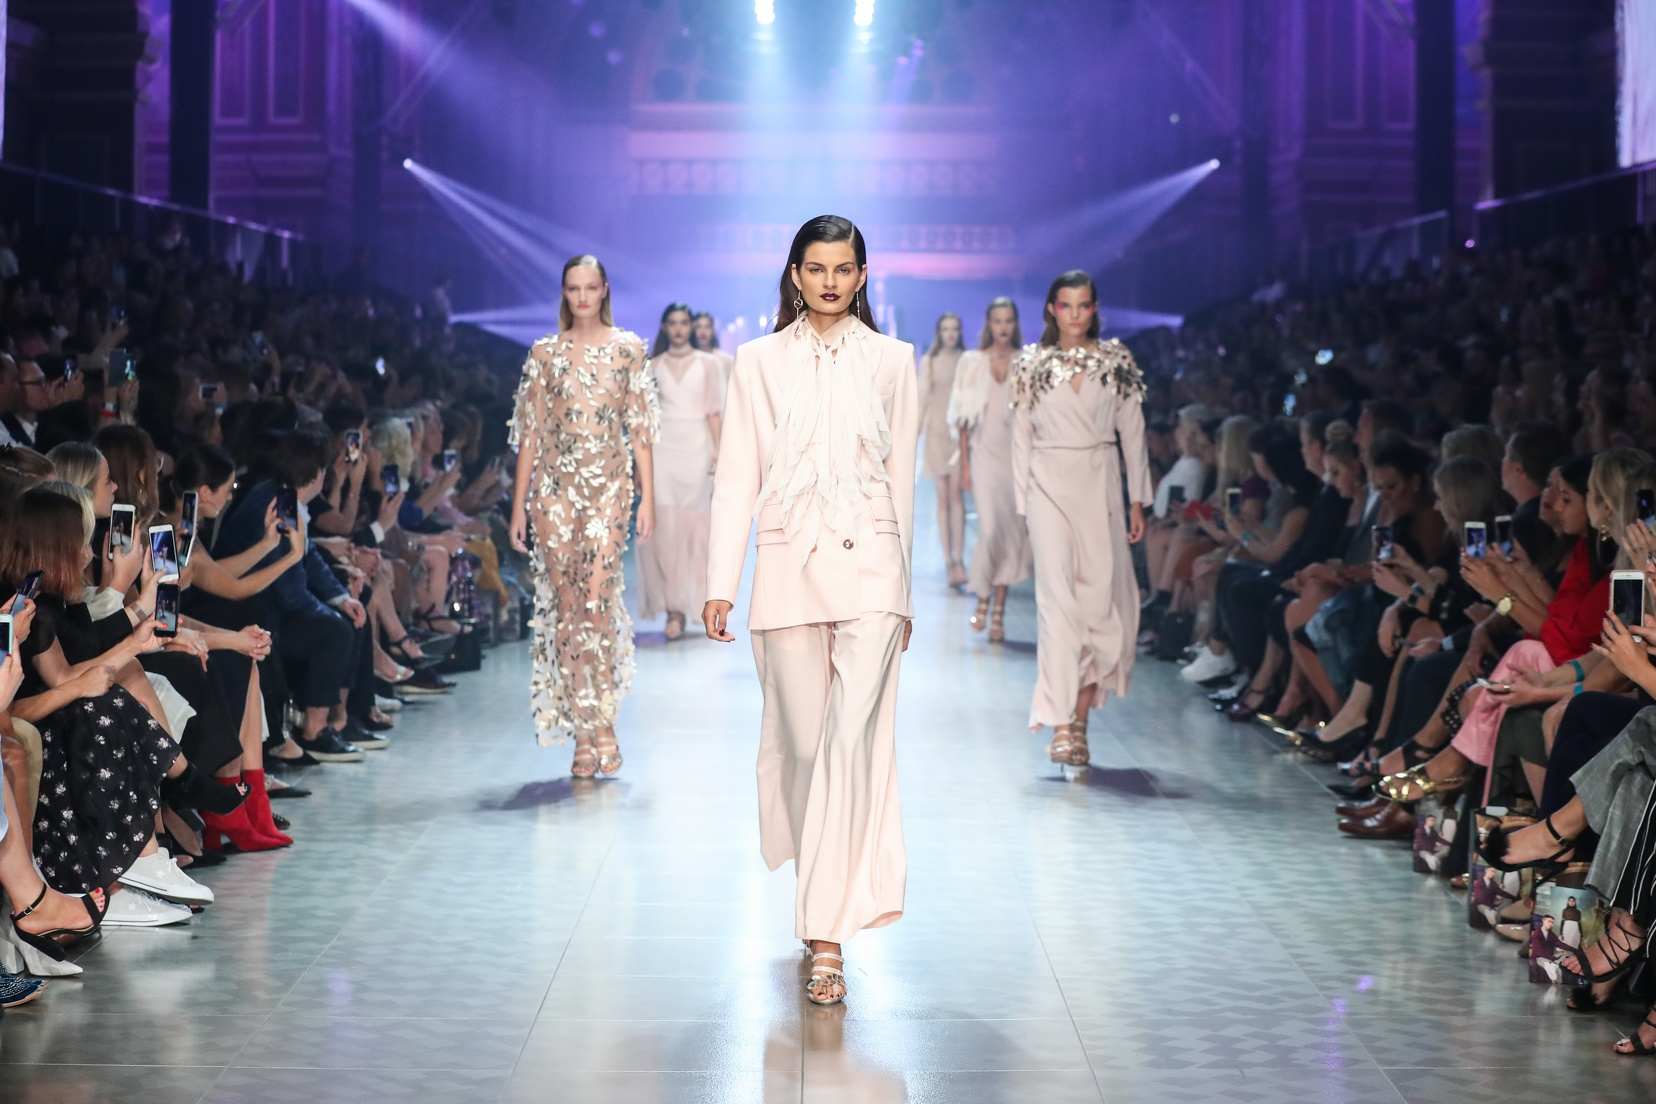 2018 VAMFF, Grand Showcase Ginger & Smart 7